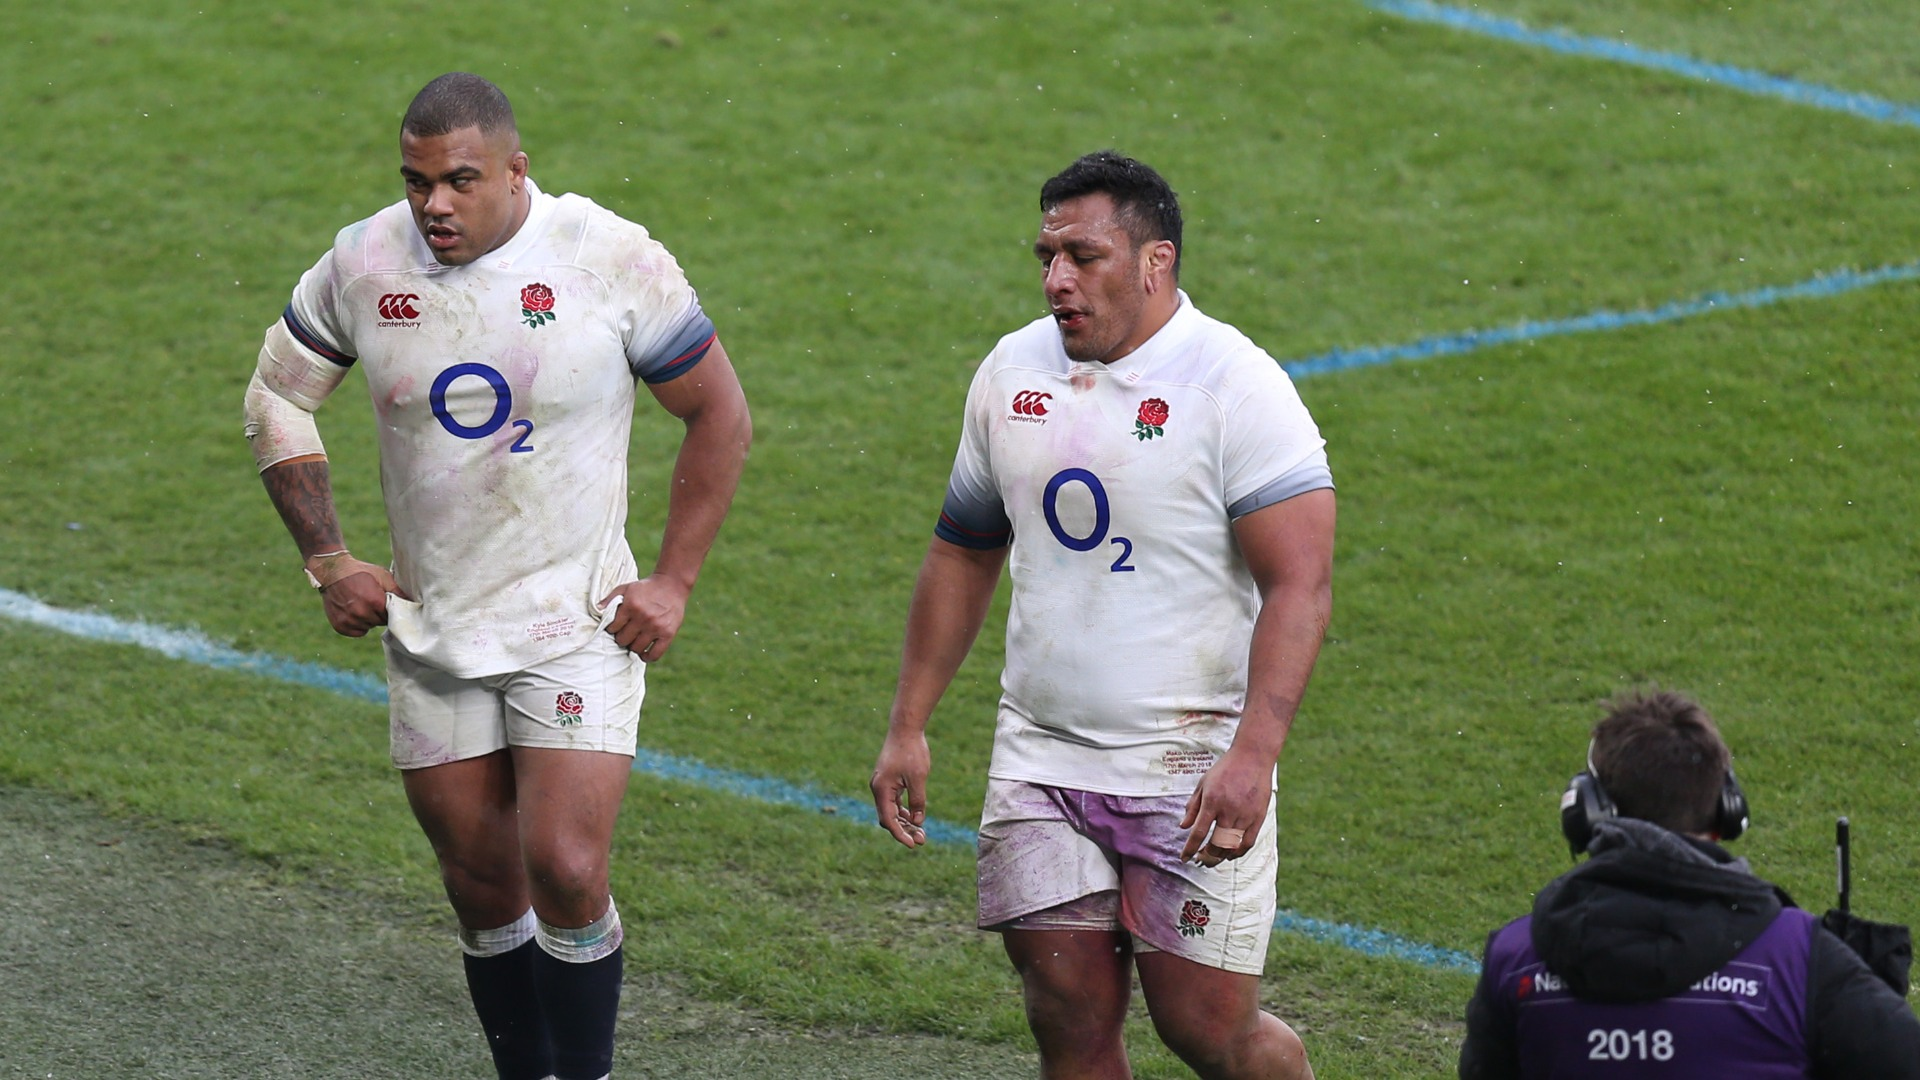 Six Nations 2021: Sinckler and Mako Vunipola return to England squad for Italy clash